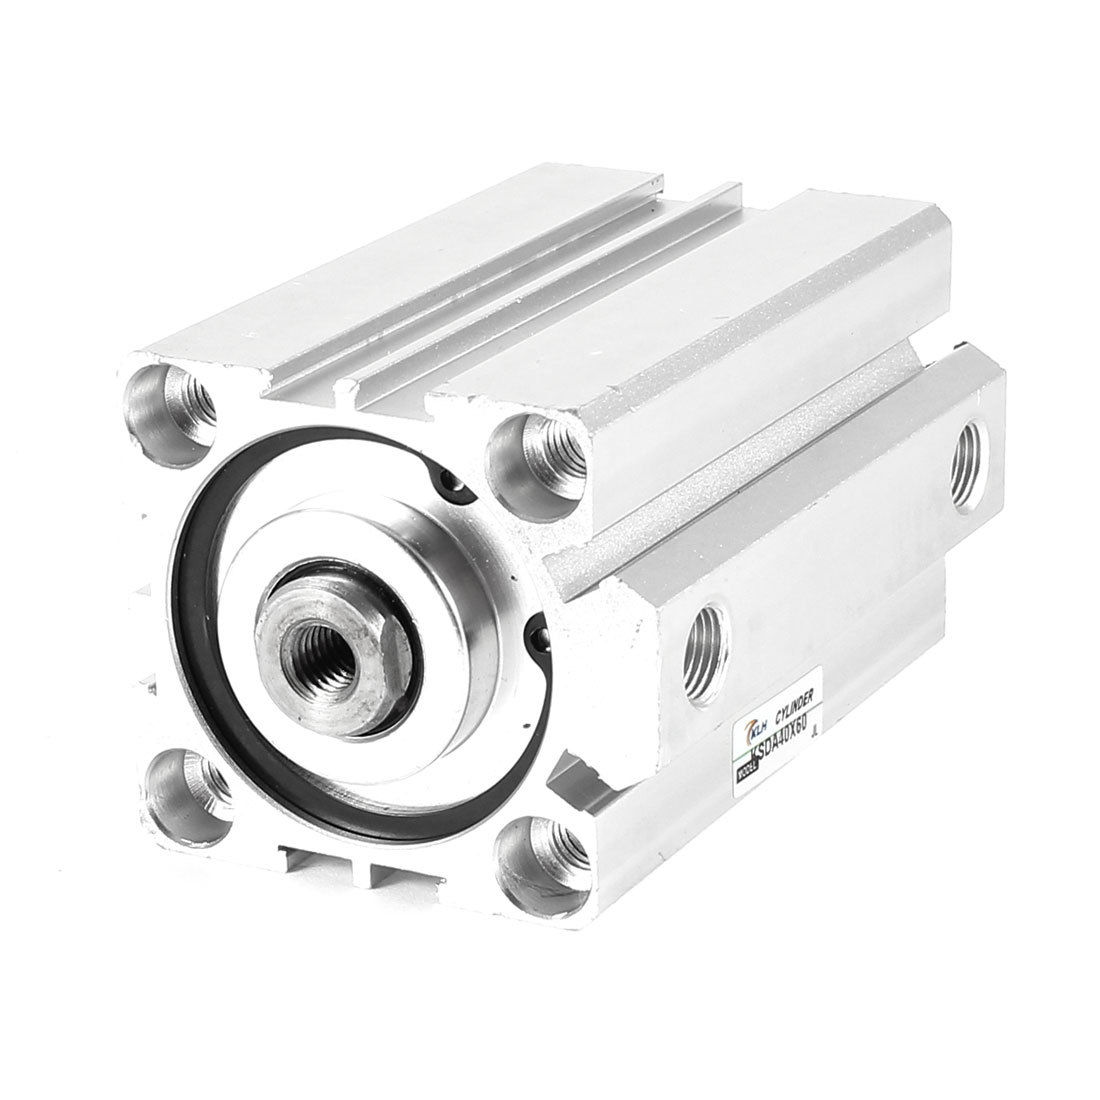 1 Pcs 63mm Bore 60mm Stroke Stainless steel Pneumatic Air Cylinder SDA63-60<br>